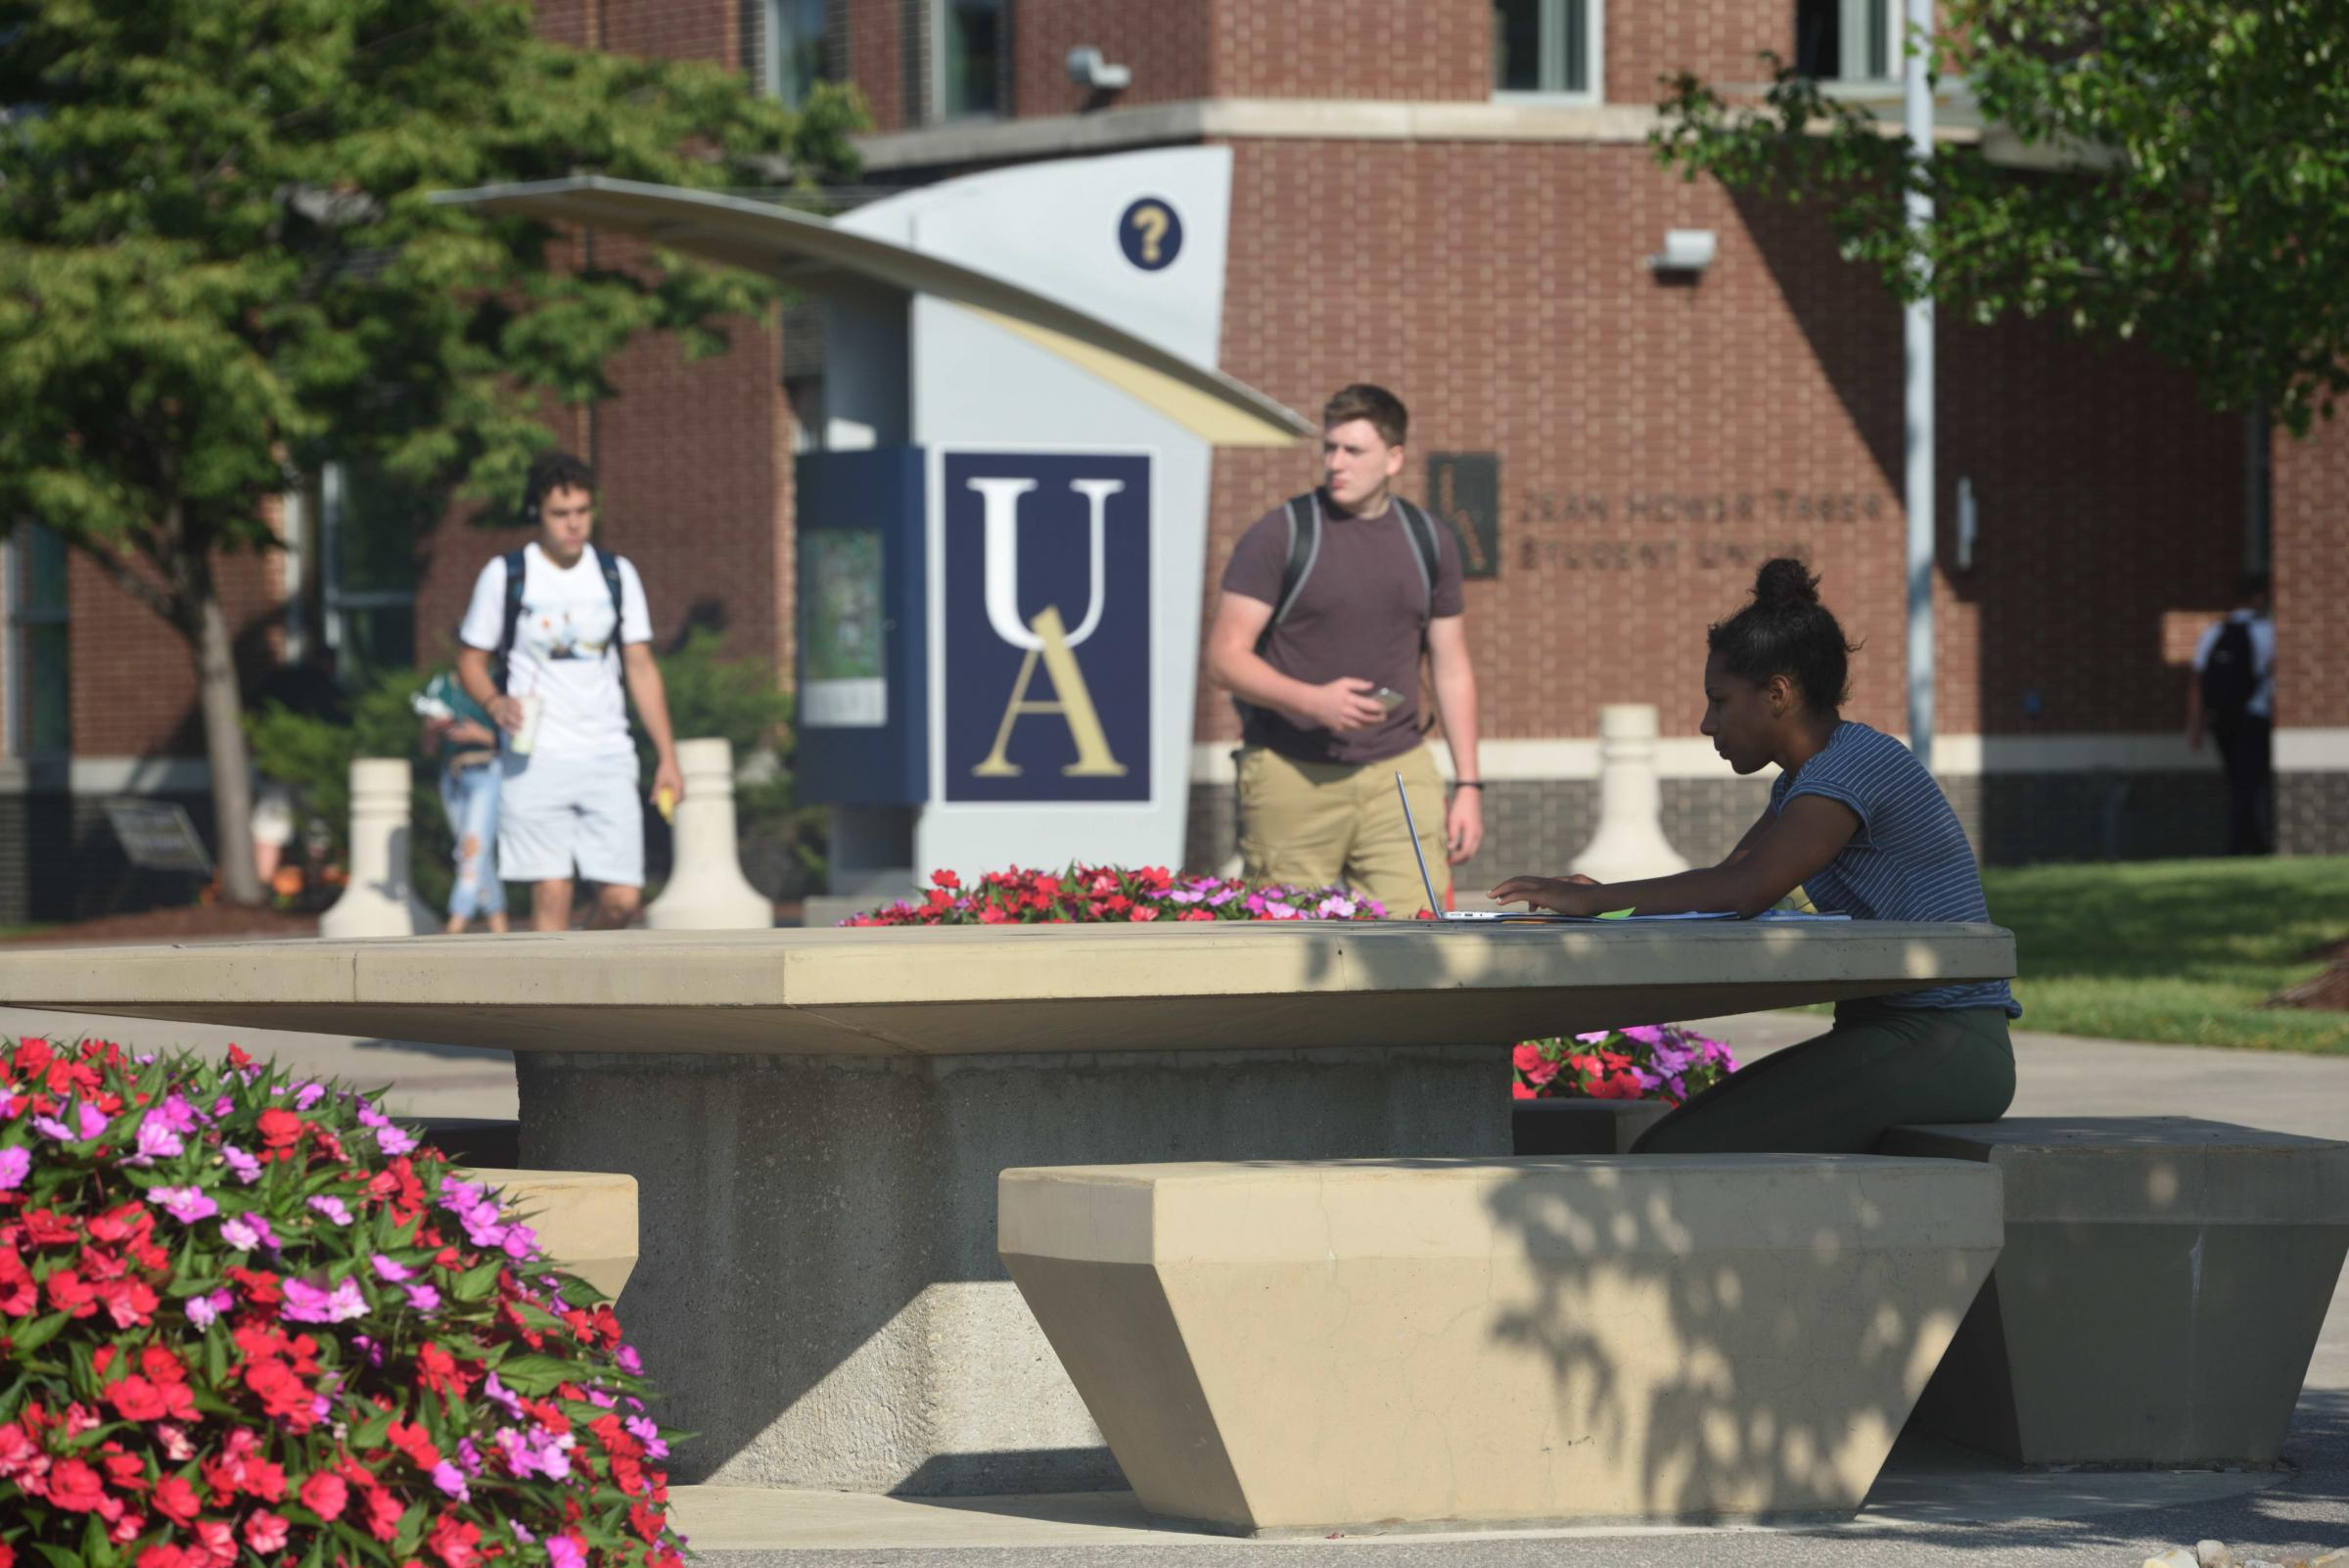 Morning Headlines: U Of A To Cut 6 Colleges; Cleveland To Pertaining To Univeristy Of Akron Calendar 2020